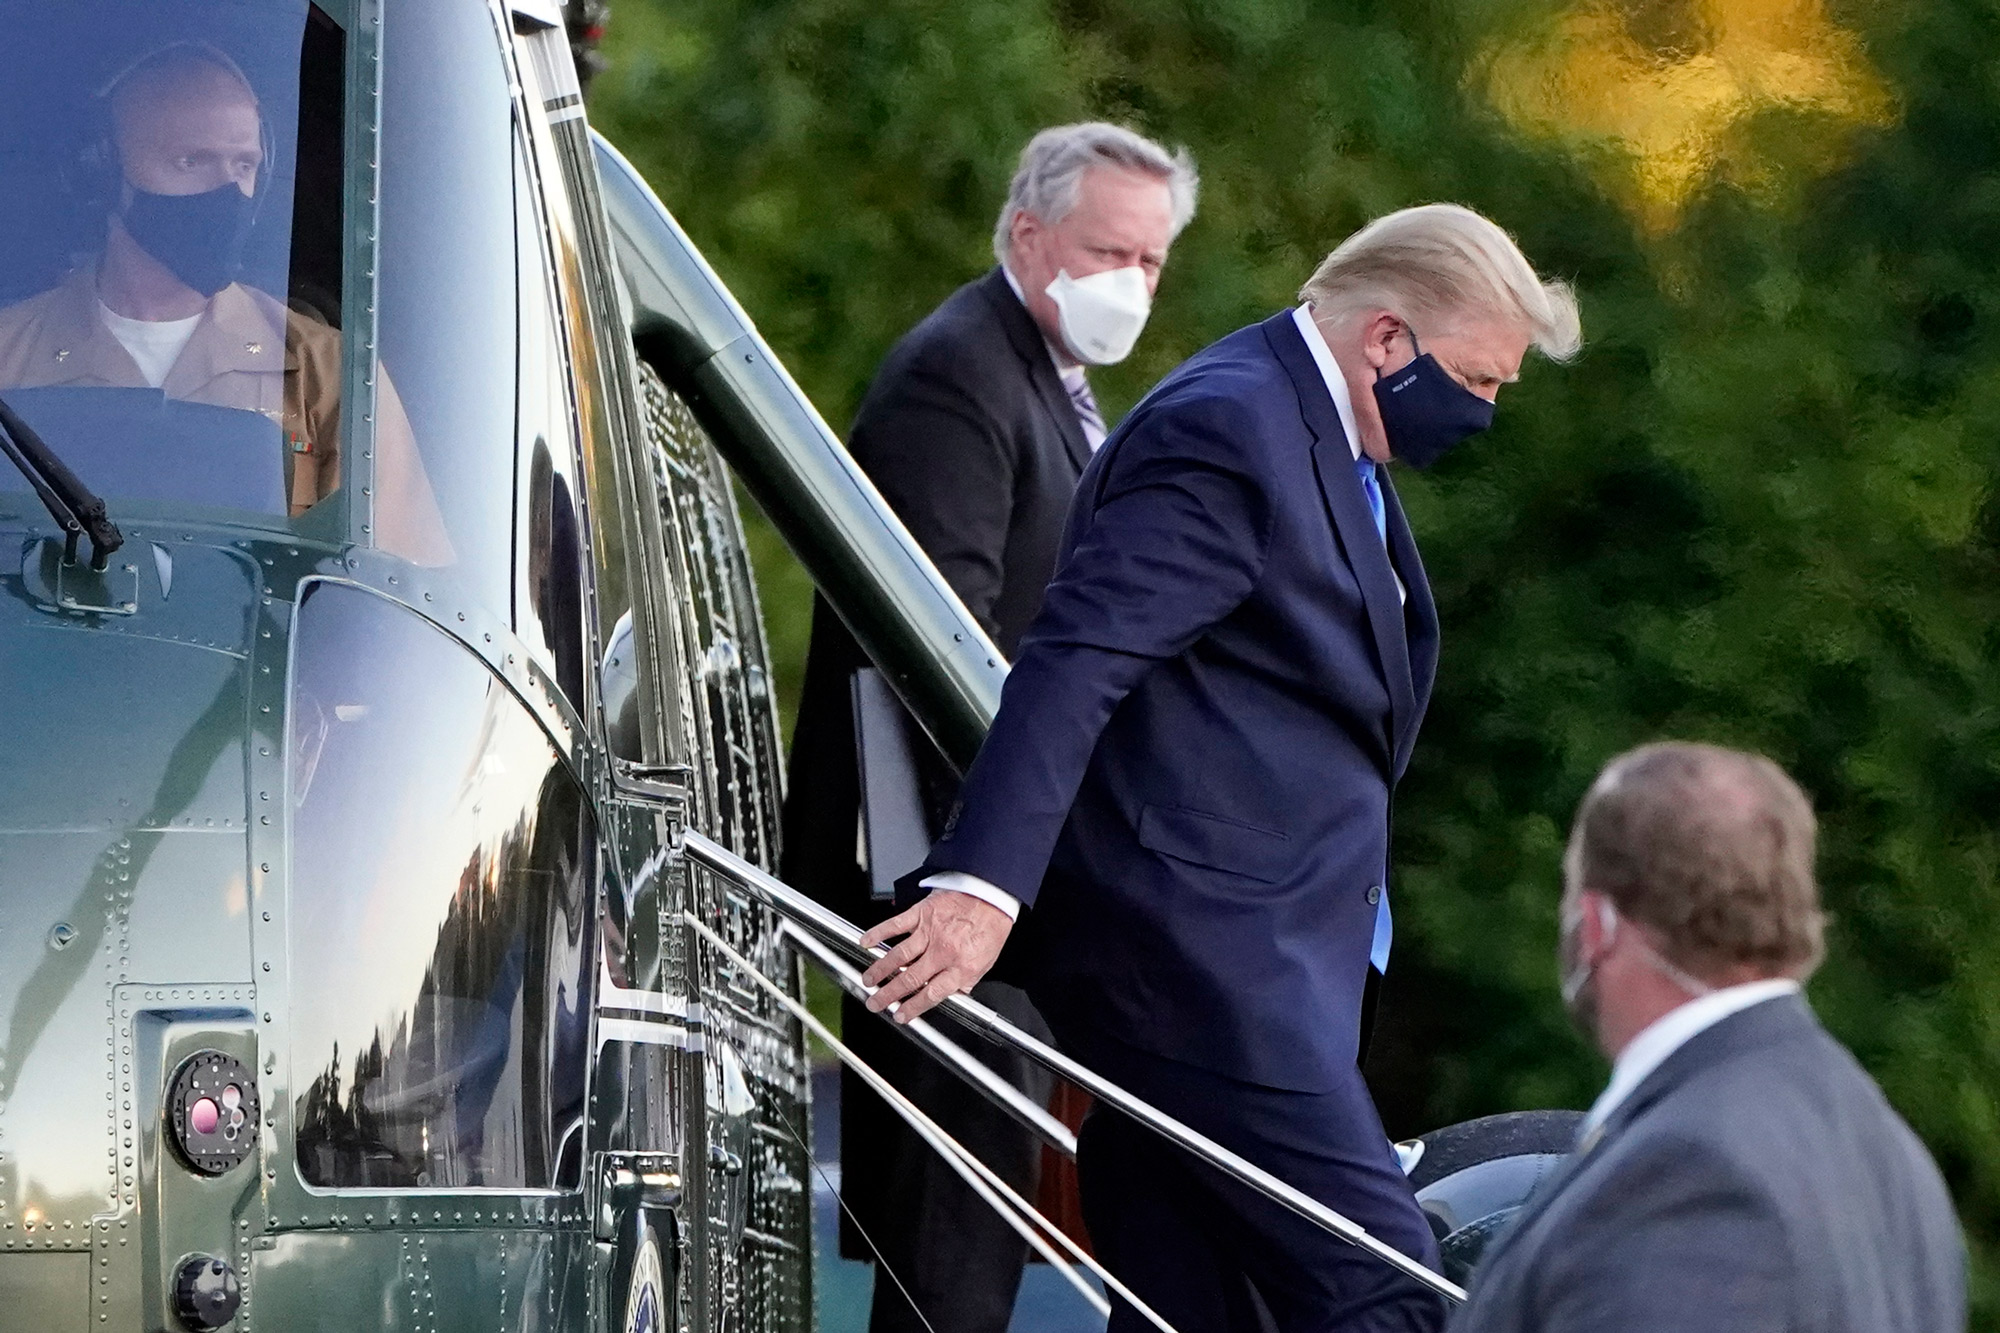 President Donald Trump arrives at Walter Reed National Military Medical Center, in Bethesda, Maryland, on October 2 on Marine One helicopter after he tested positive for COVID-19.